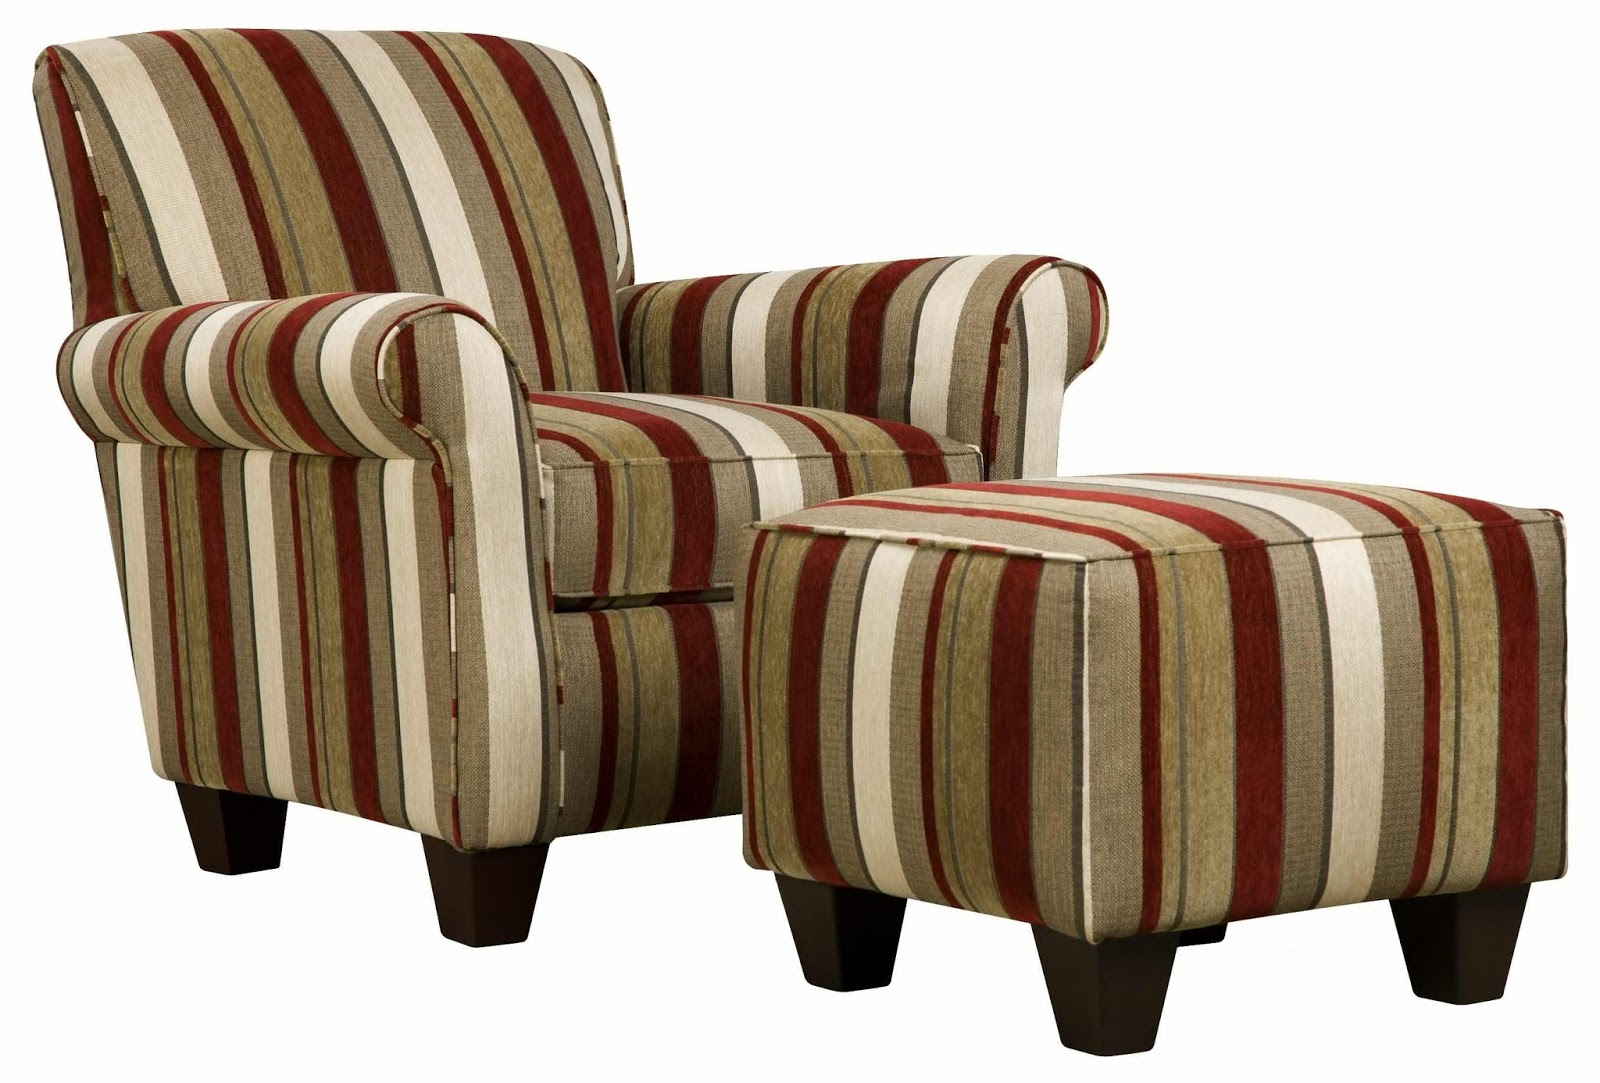 Accent Sofa Sets Designer Sofas Sydney Living Room Chairs With Ottomans Large Style Home Cheap